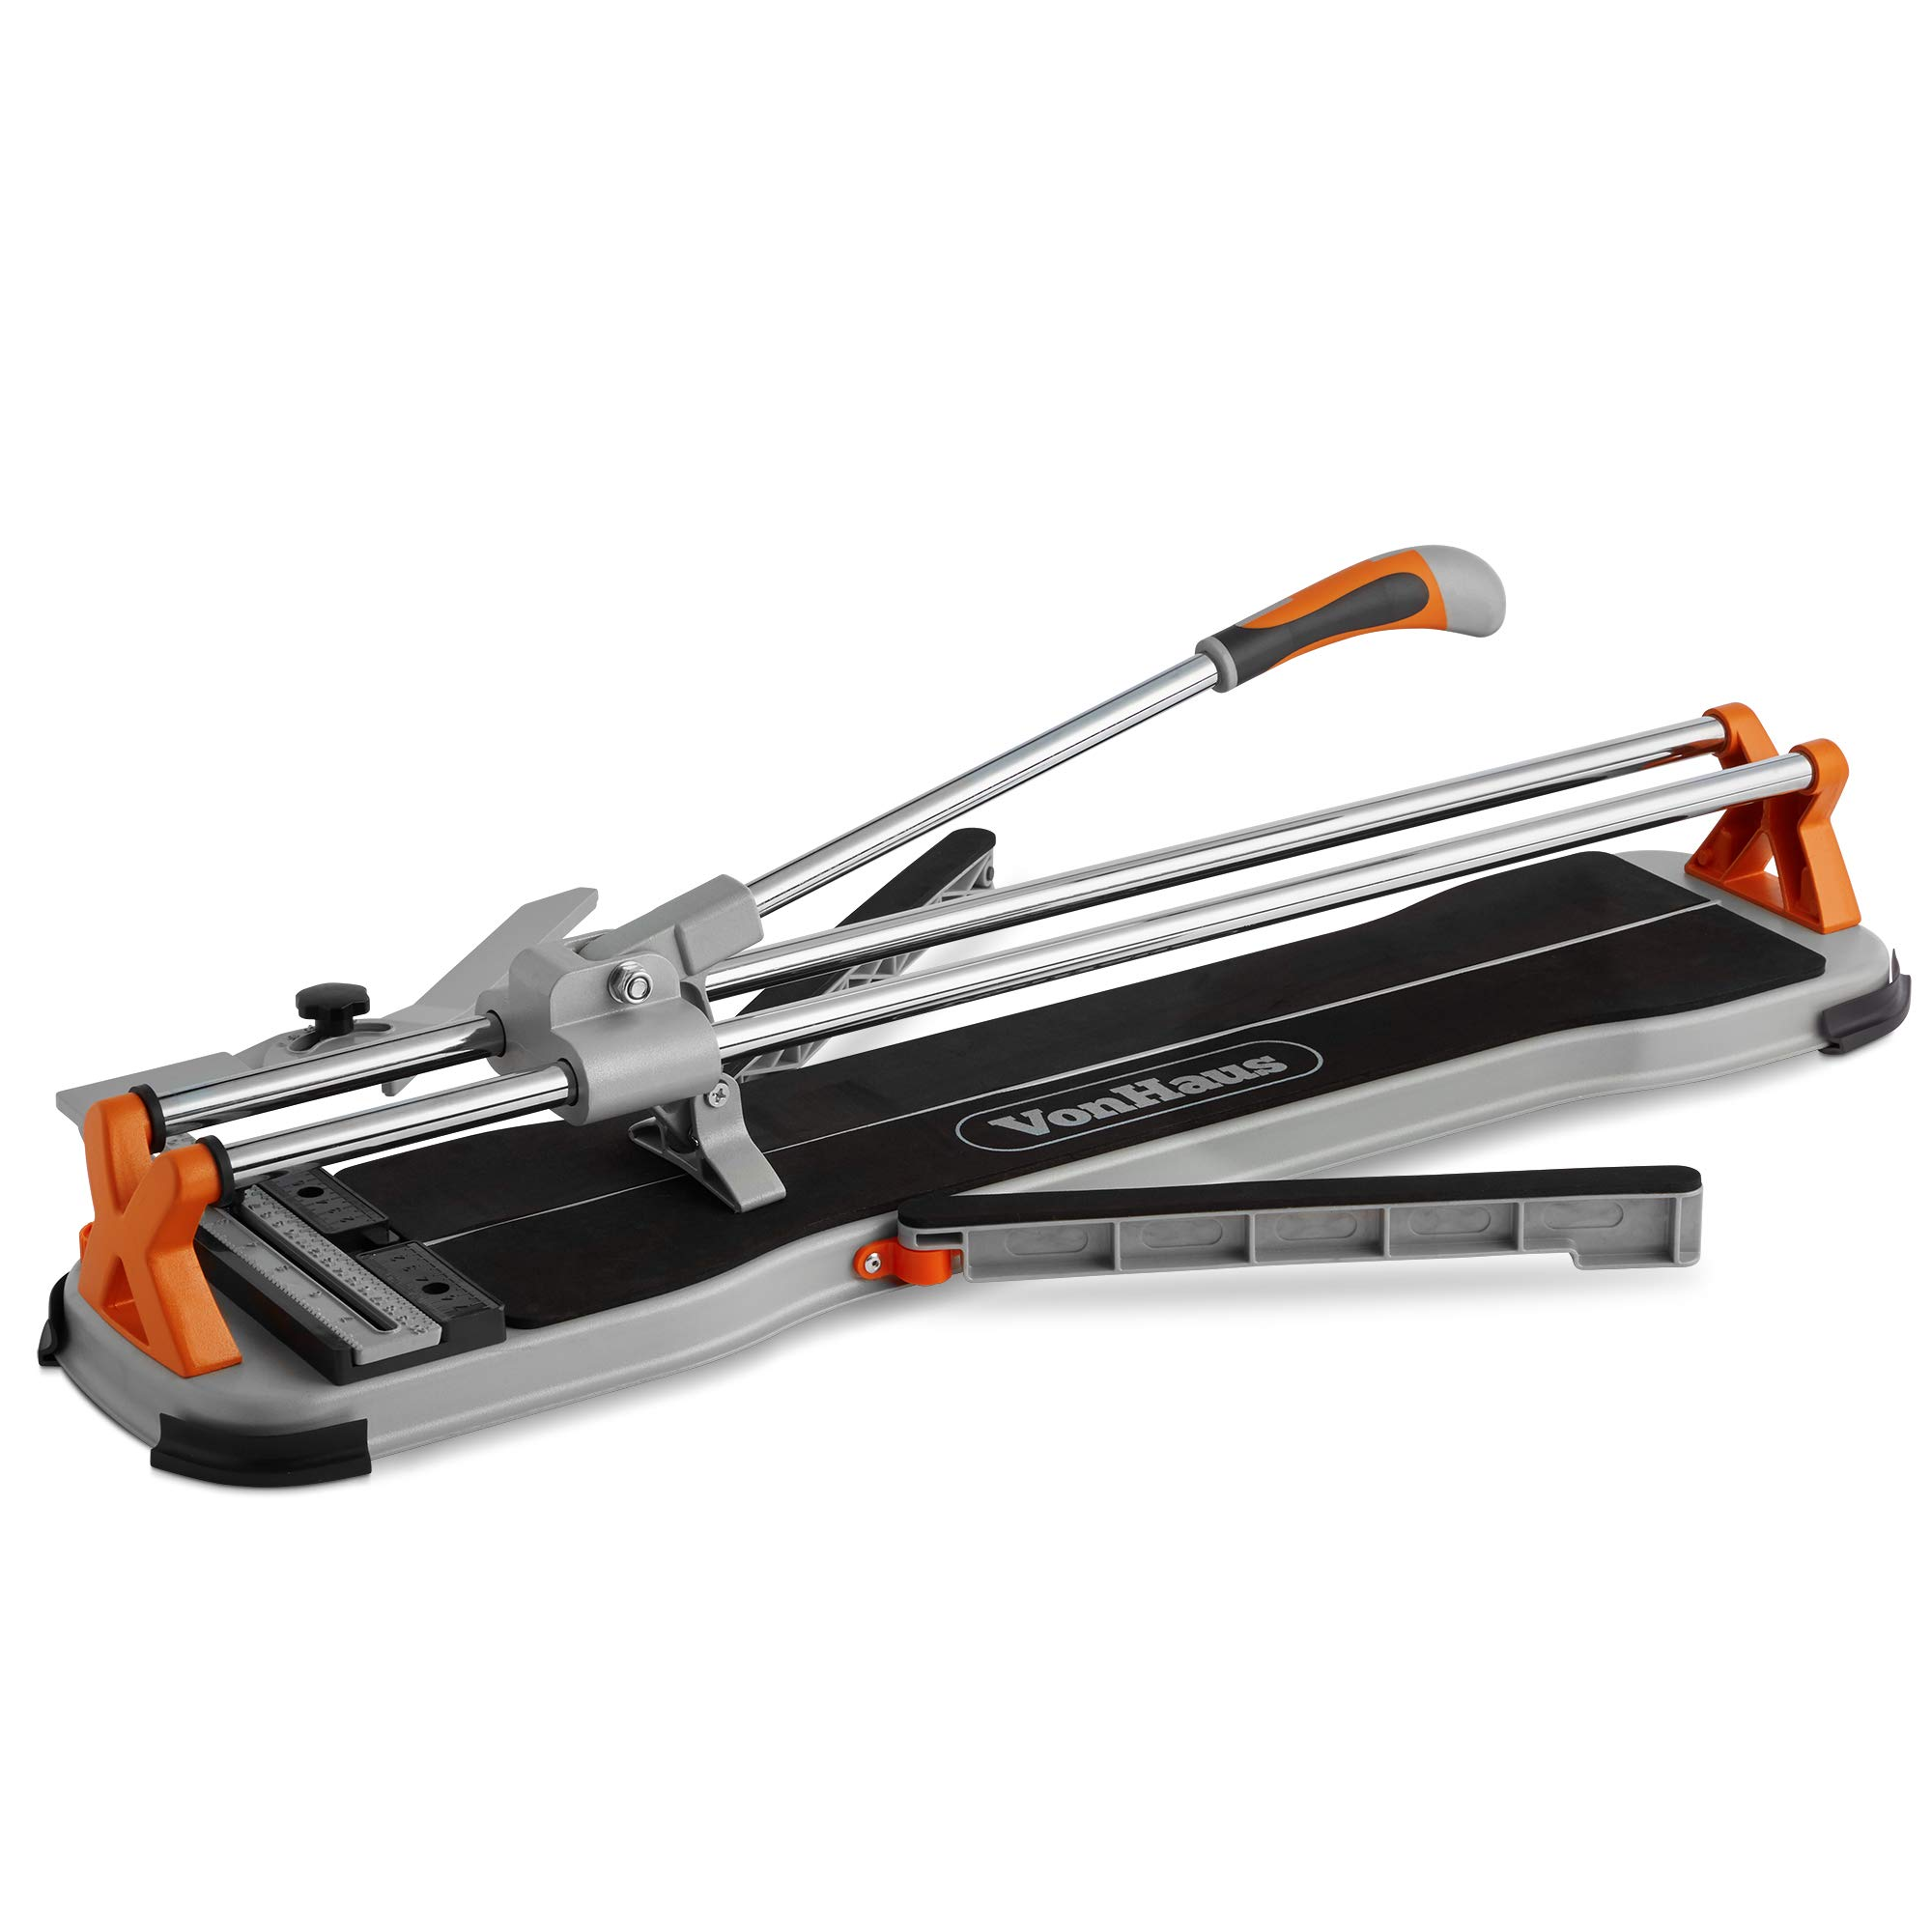 VonHaus 24 Inch Manual Tile Cutter with Tungsten Carbide Cutting Wheel, Anti-sliding Rubber Surface, 1x Spare Scoring Wheel - Suitable for Porcelain and Ceramic Floor and Ceiling Tiles